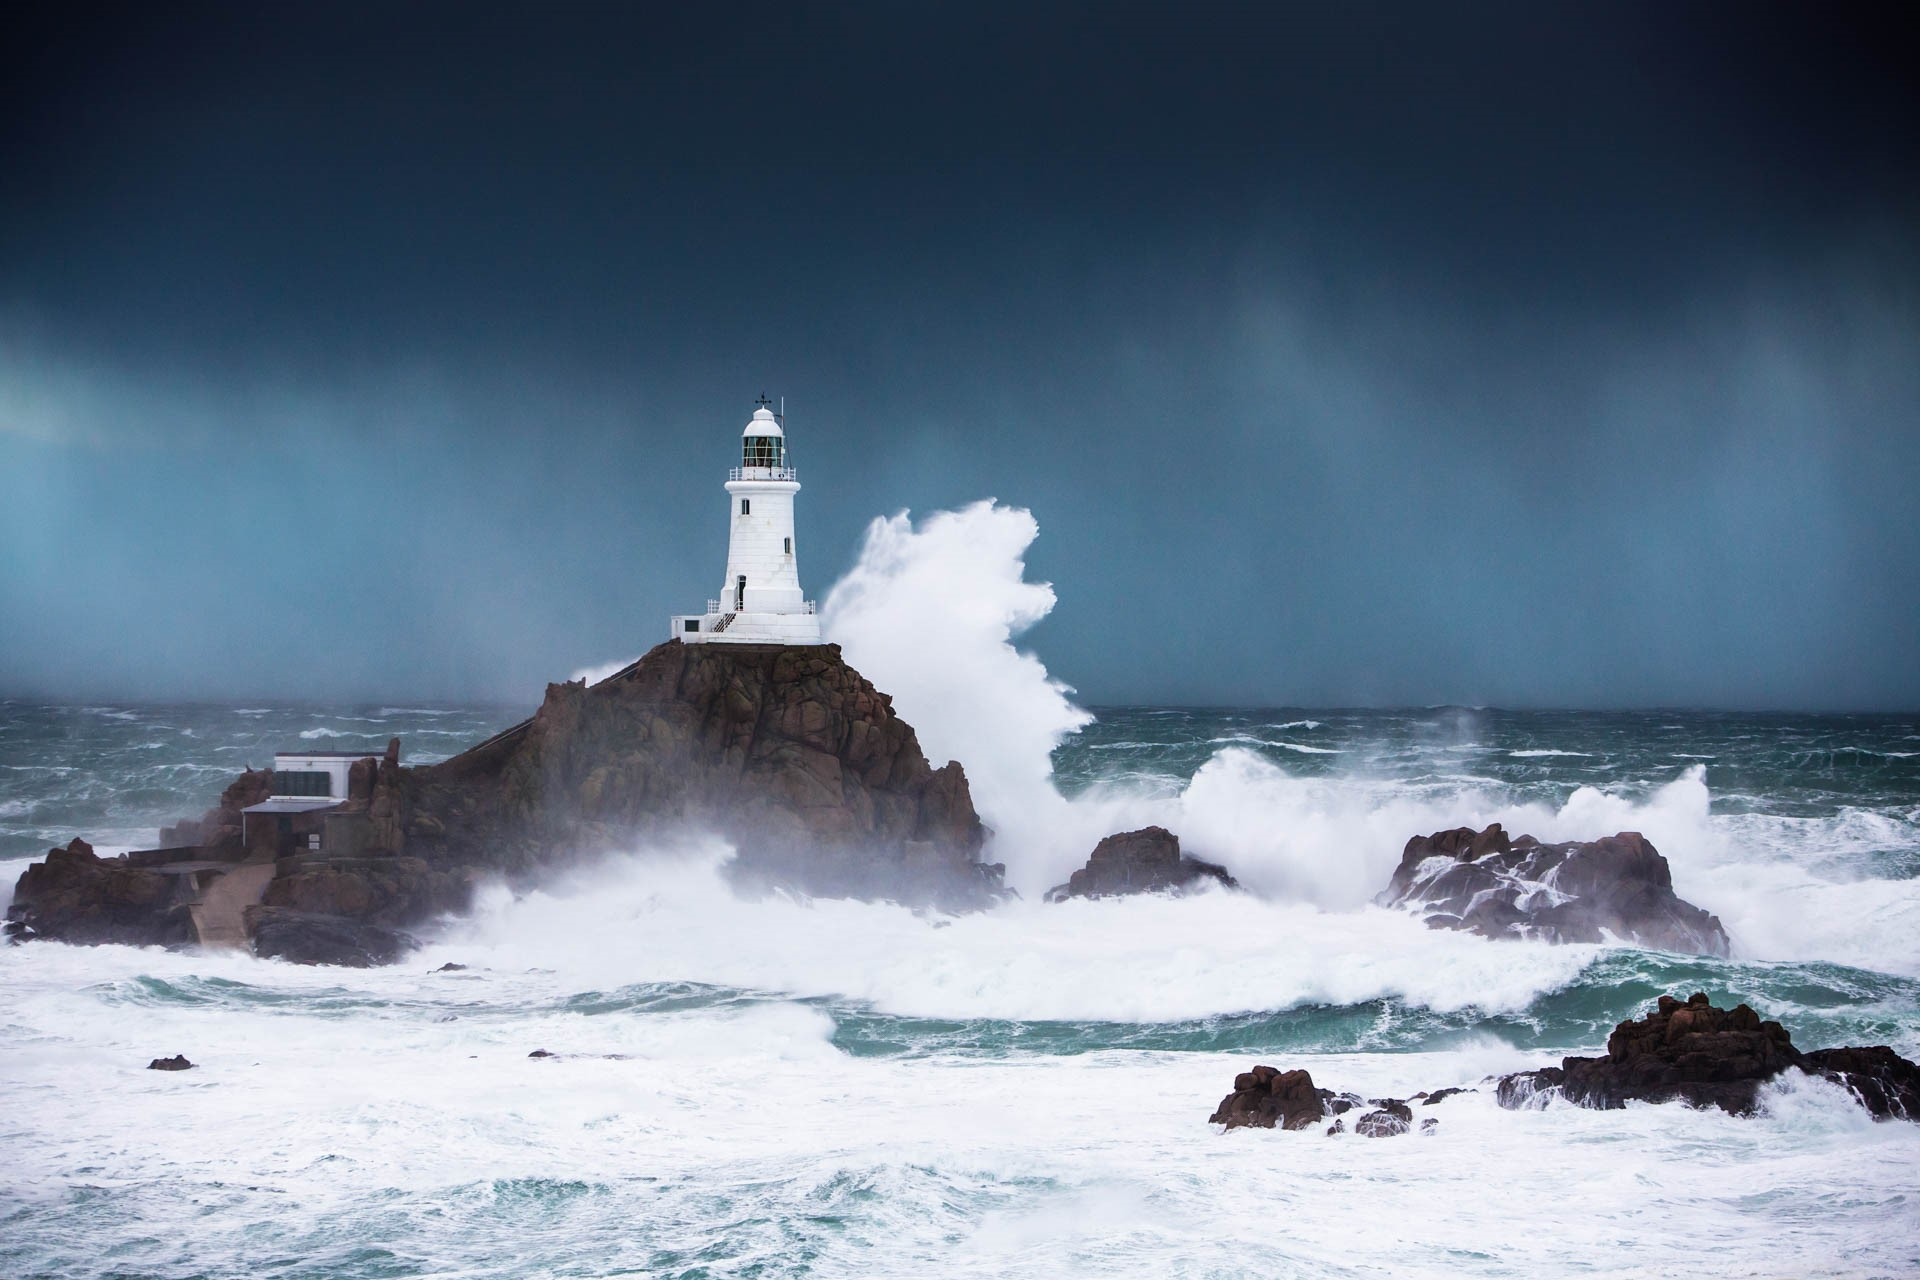 Corbiere Lighthouse surrounded by stormy winter seas